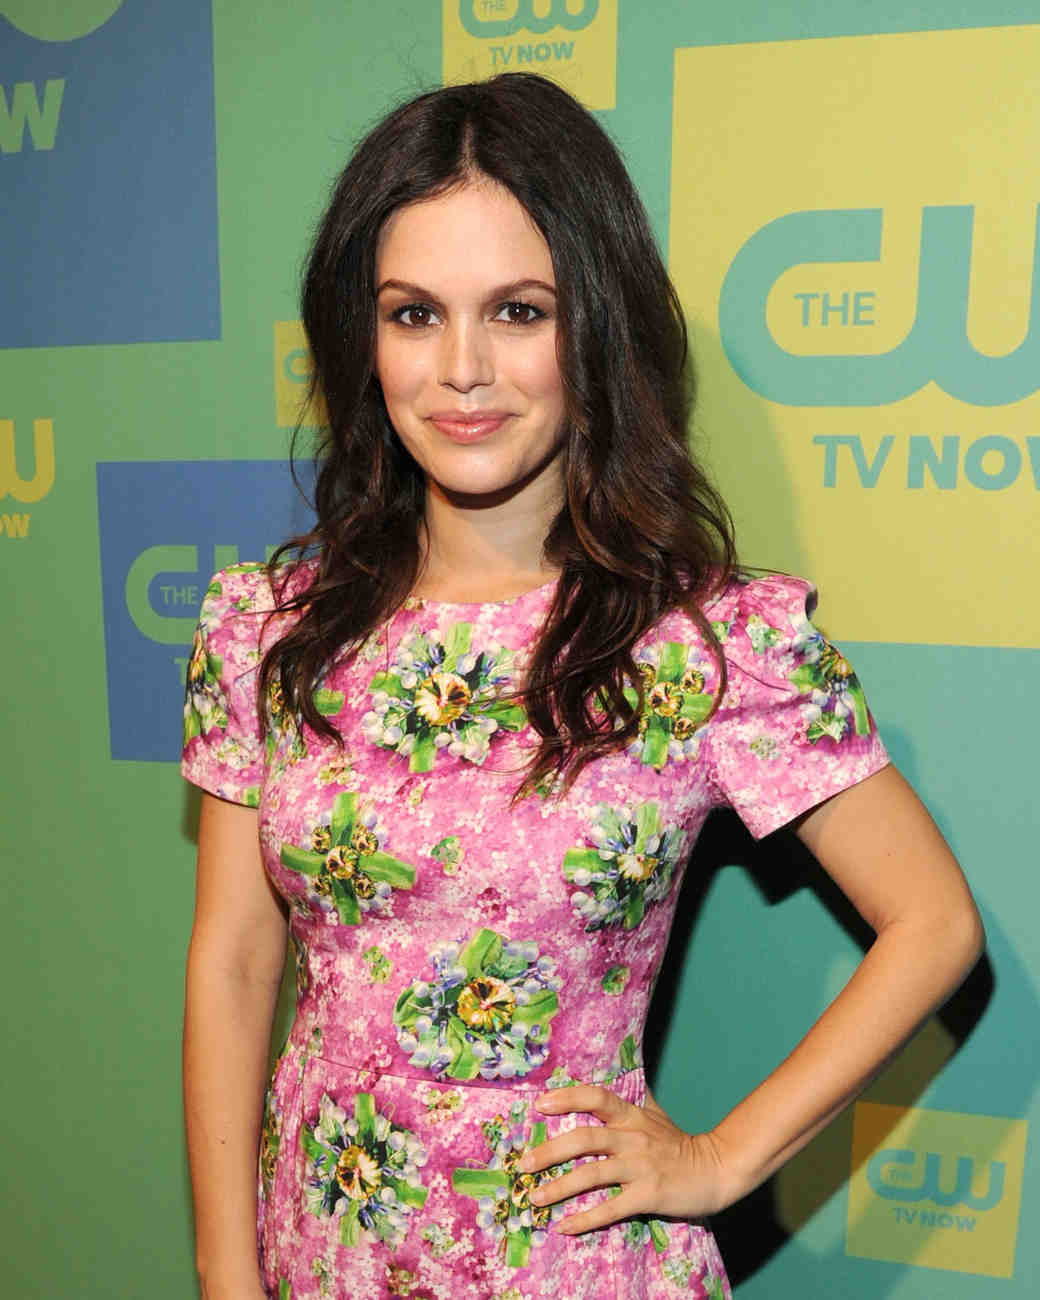 Rachel Bilson as Maid of Honor